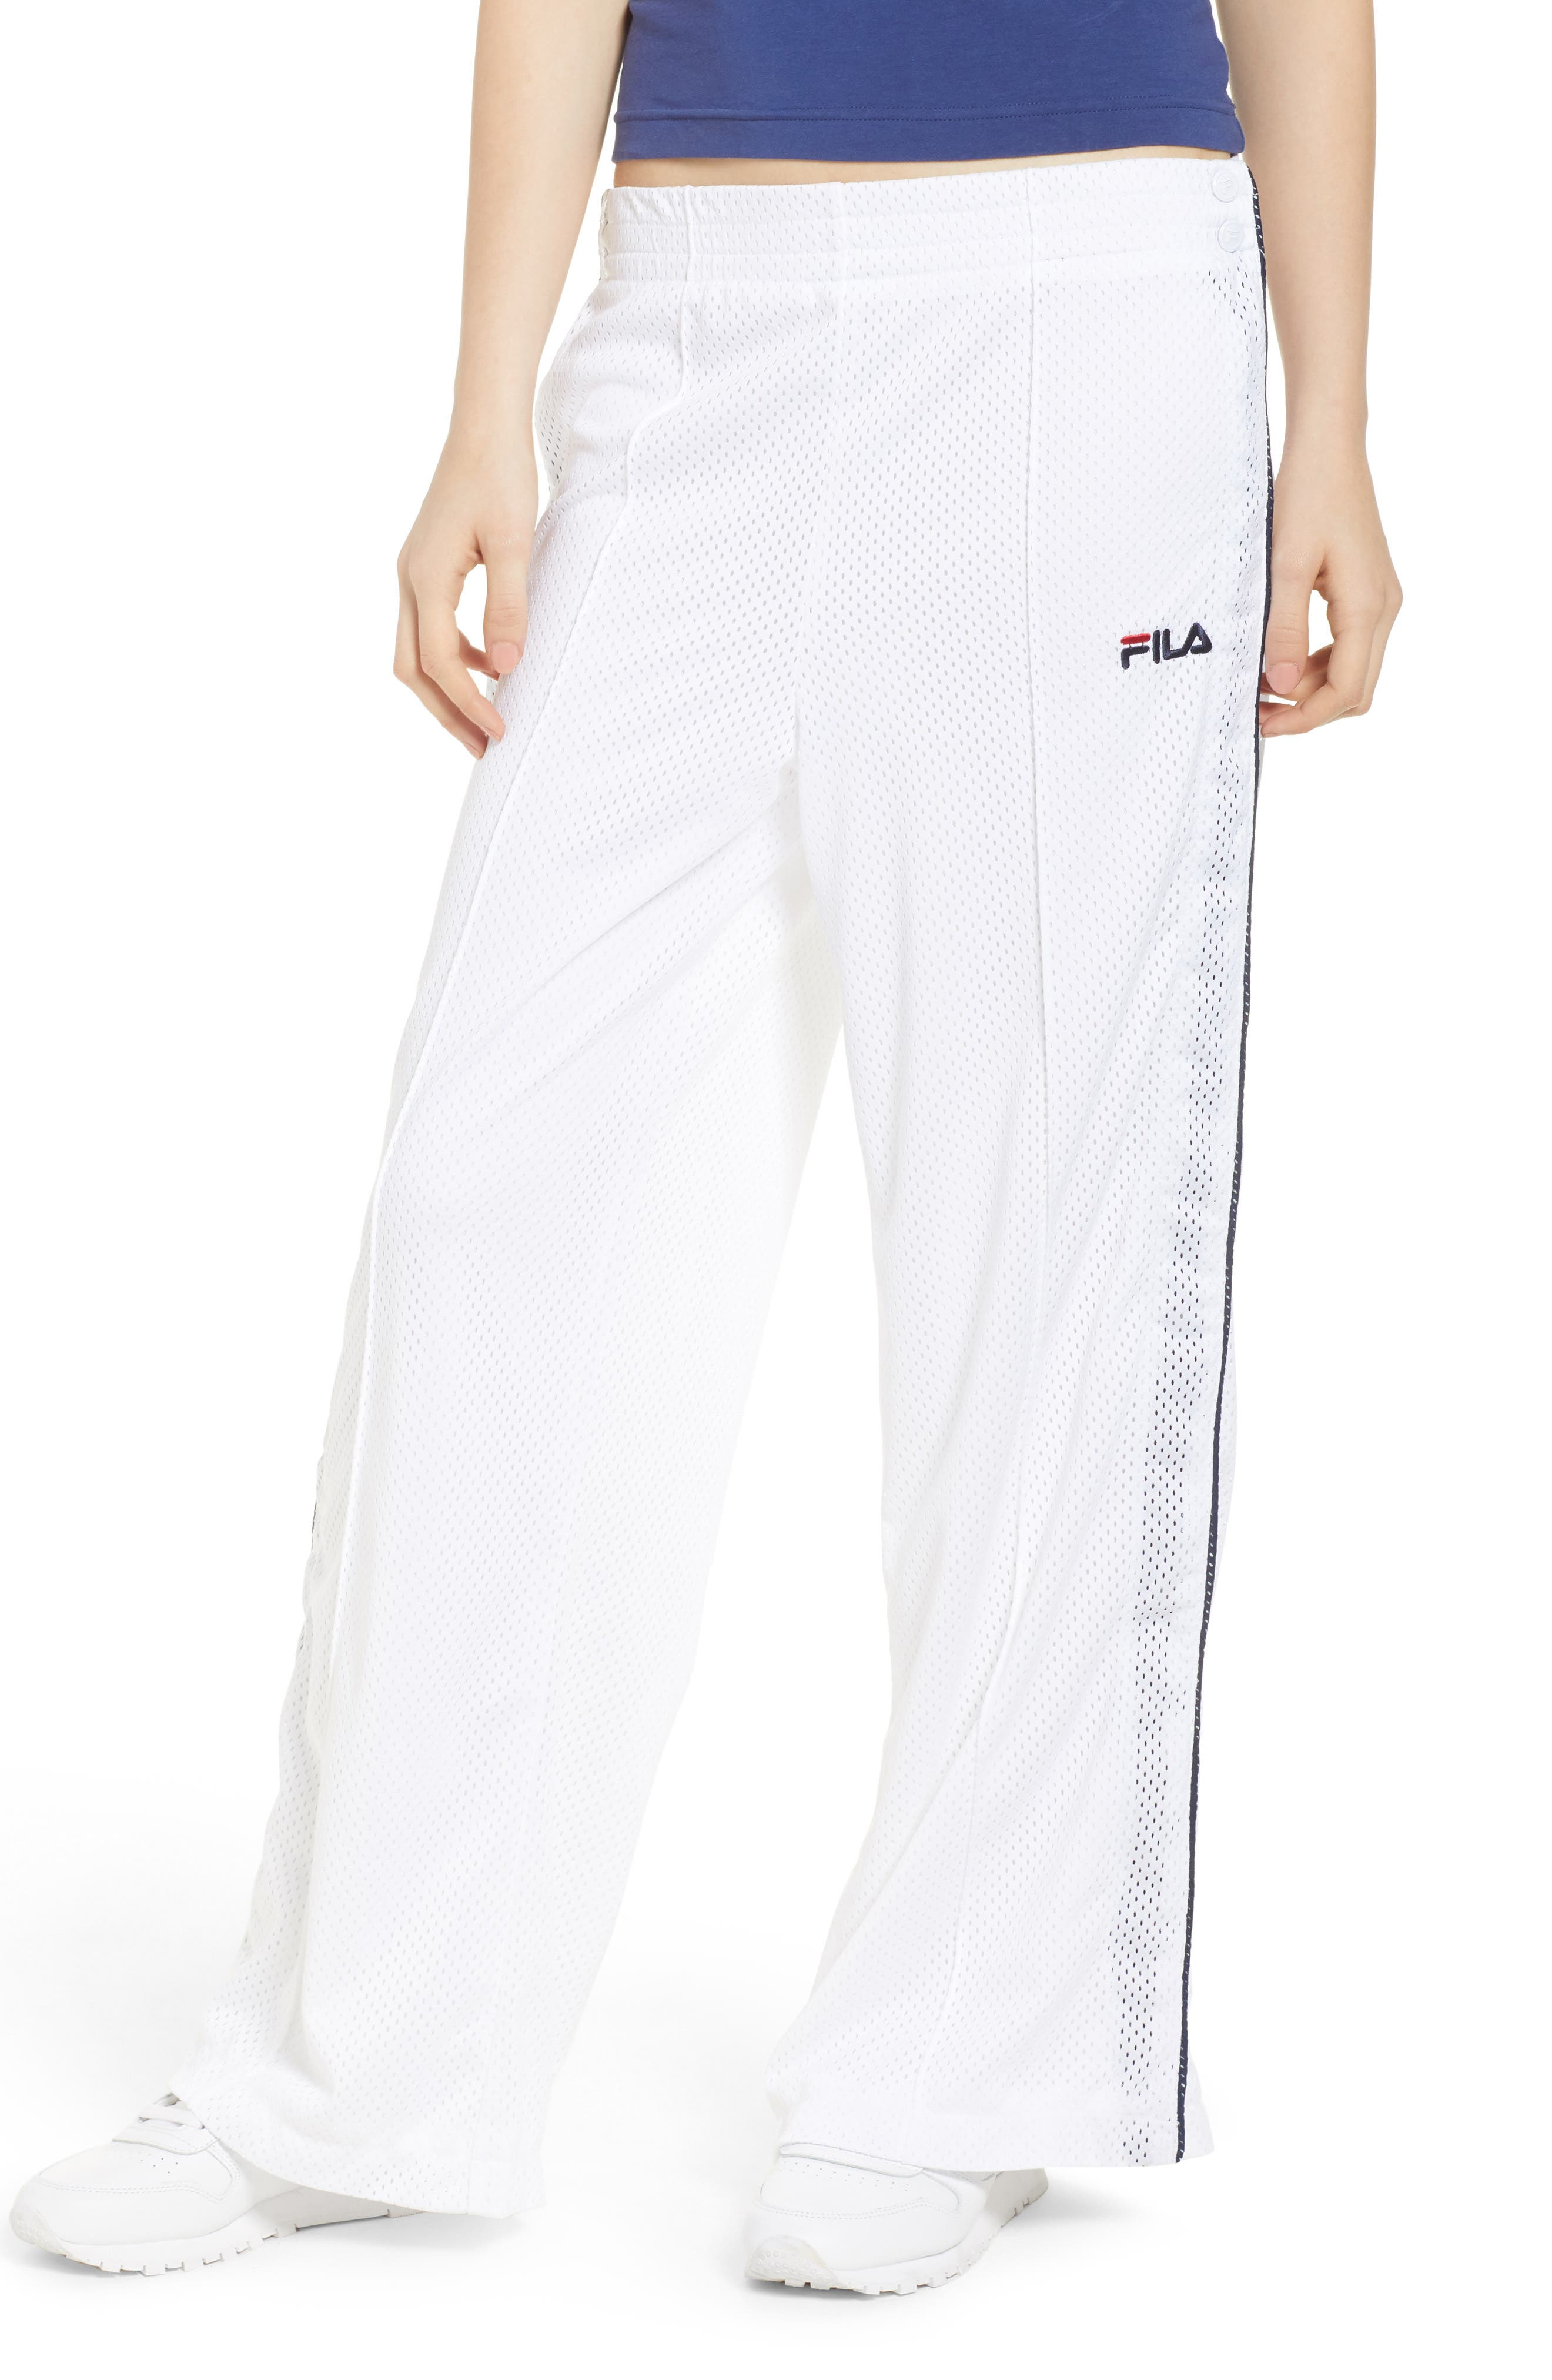 FILA Neka Tear Away Pants